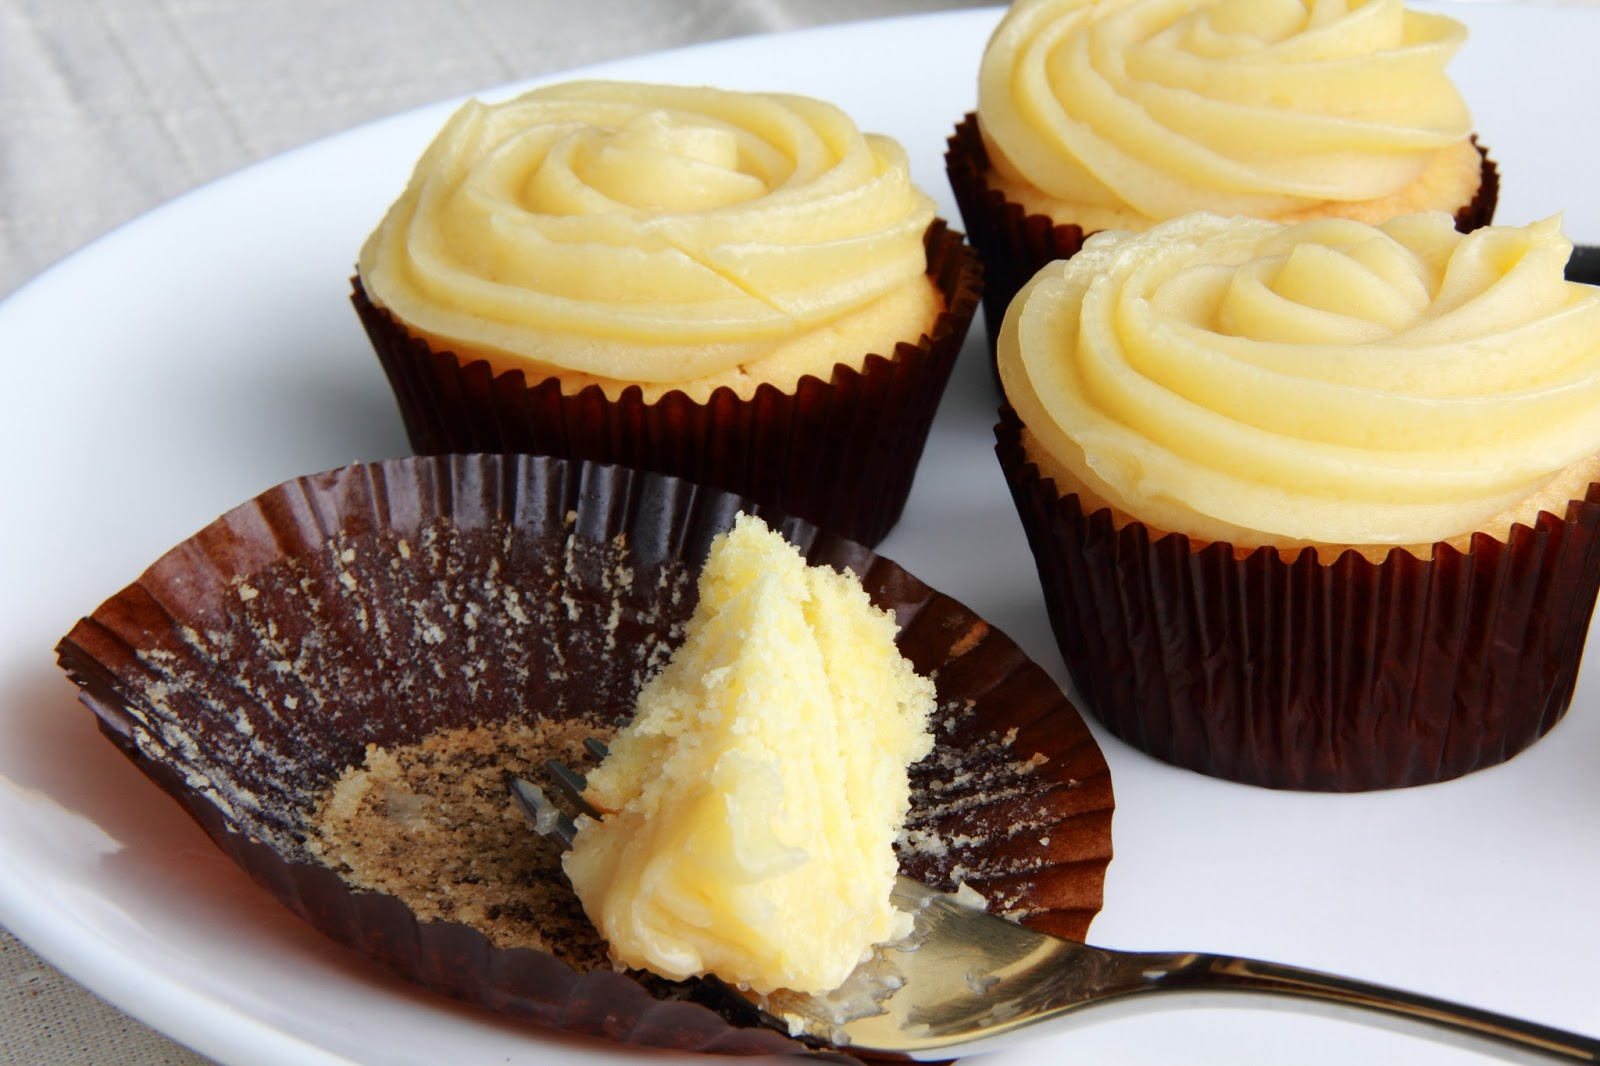 ... Kitchen }: Chamomile Lemon Cupcakes with Honey Buttercream Frosting